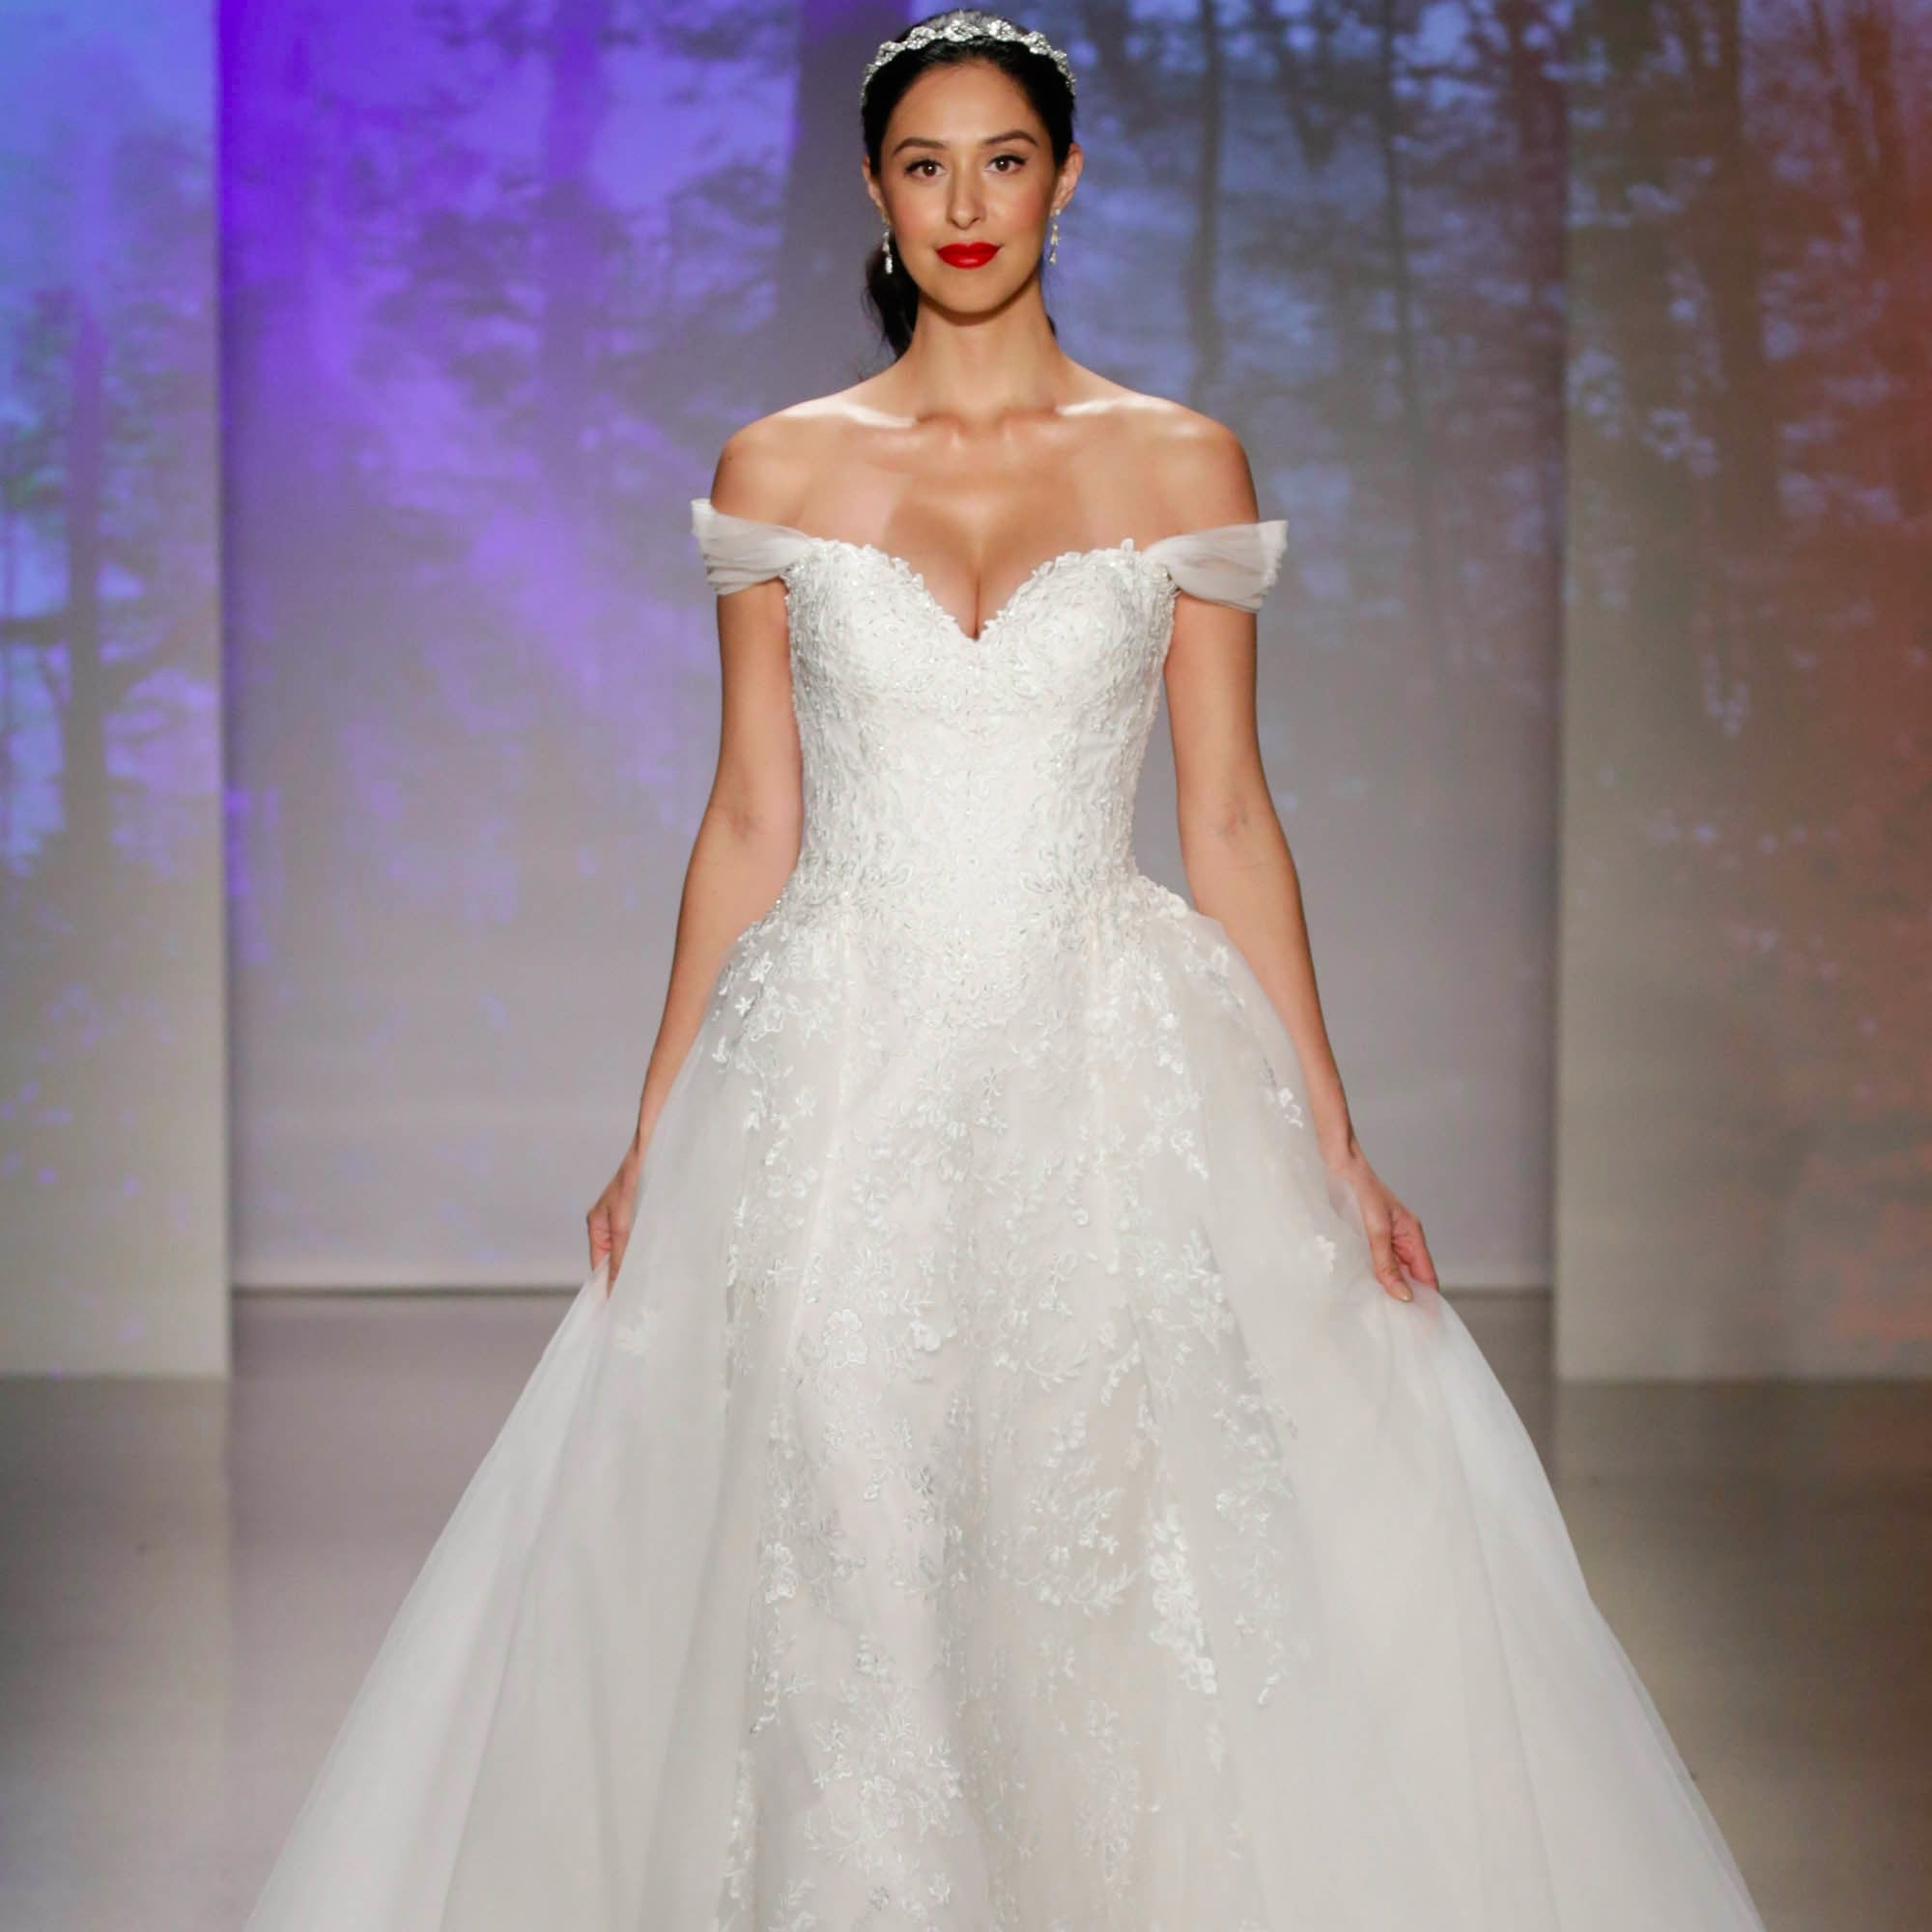 disney princess wedding dresses alfred angelo photo - 1